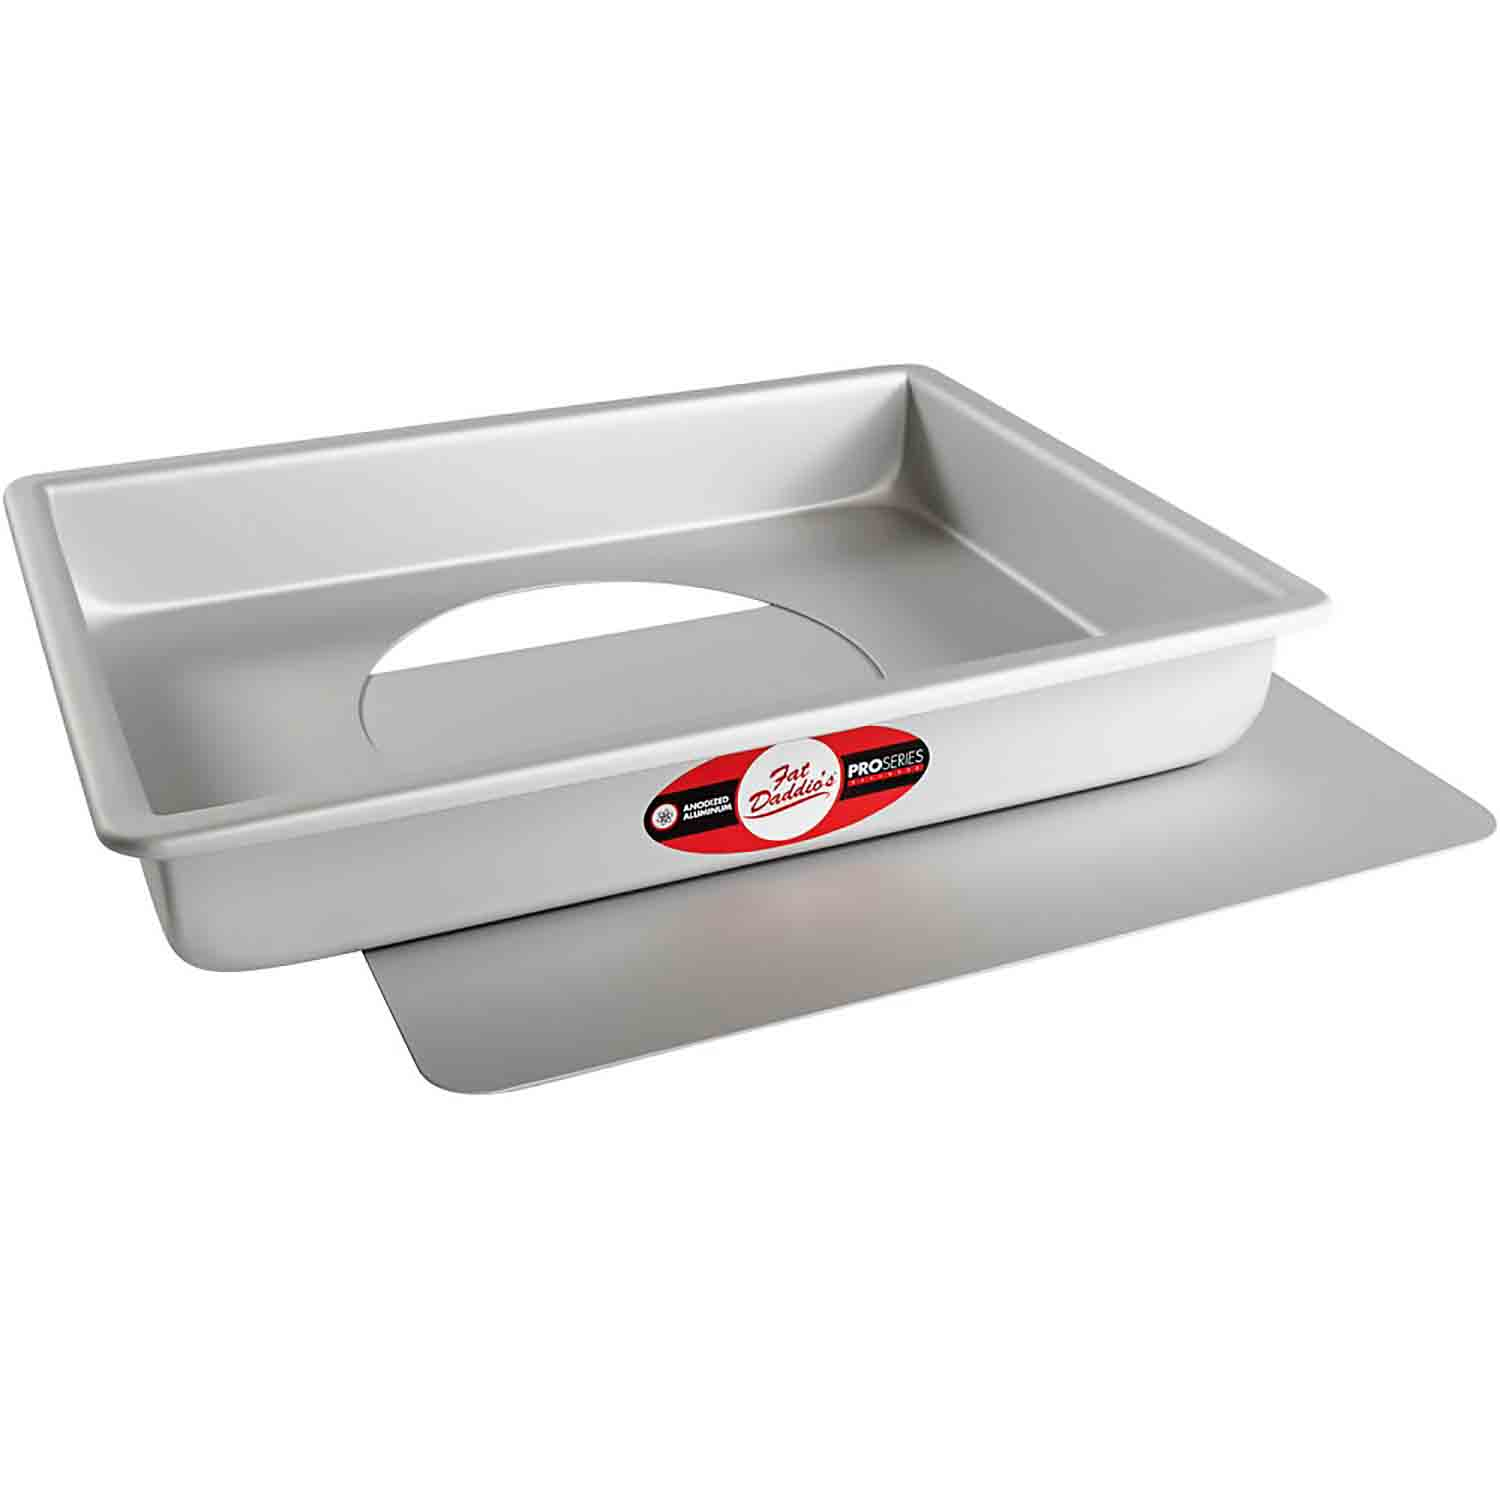 "9"" x 13"" x 2"" Quarter Sheet Cheesecake Pan"